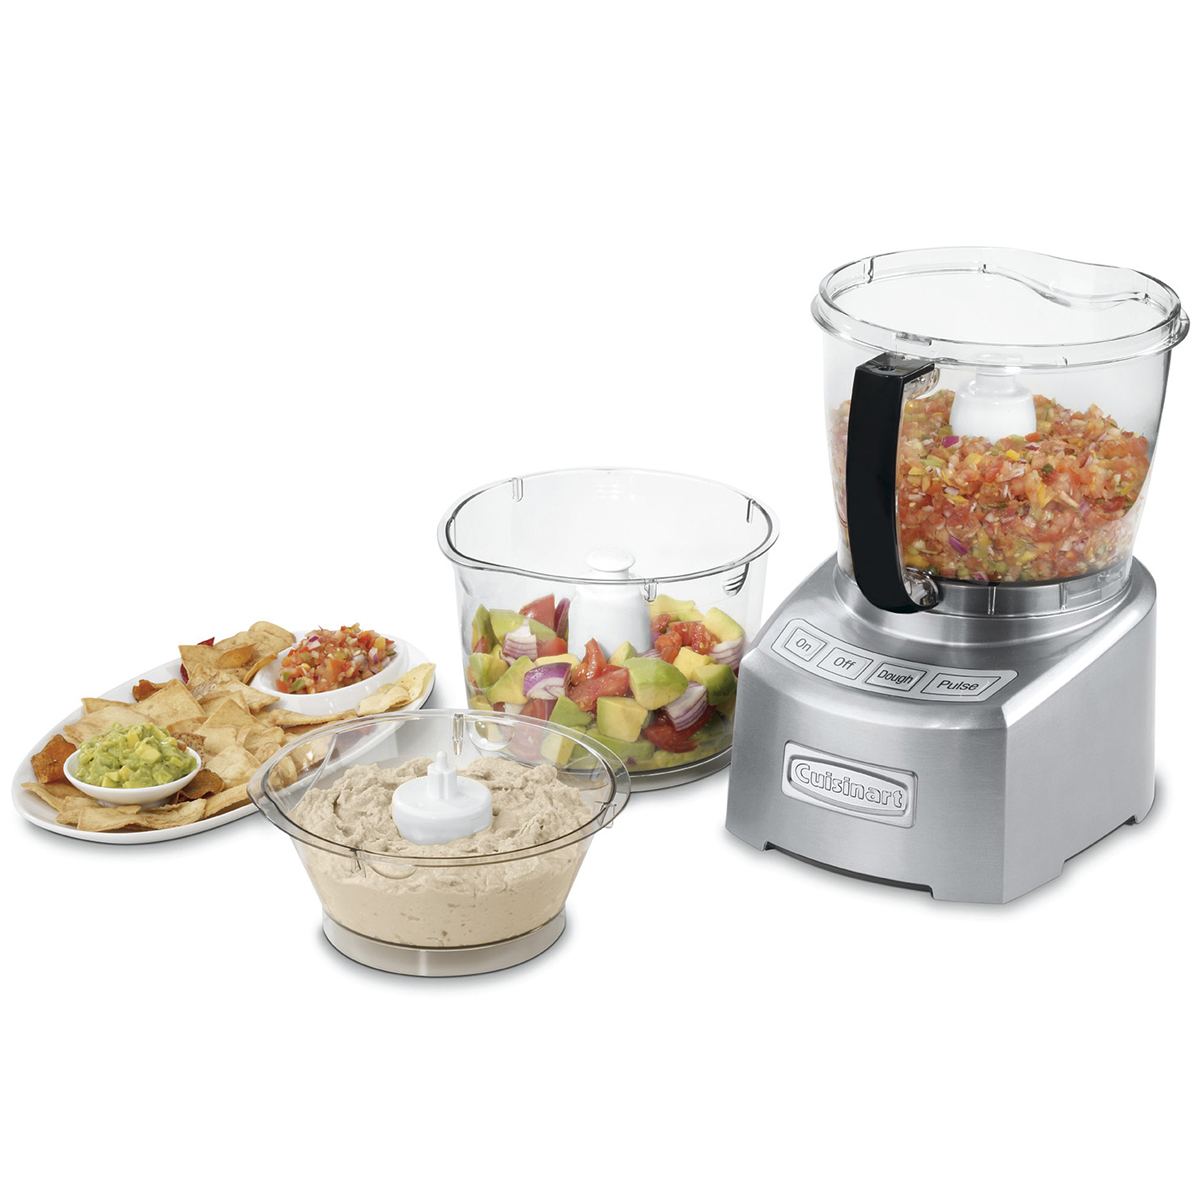 Cuisinart Food Processor How To Turn On